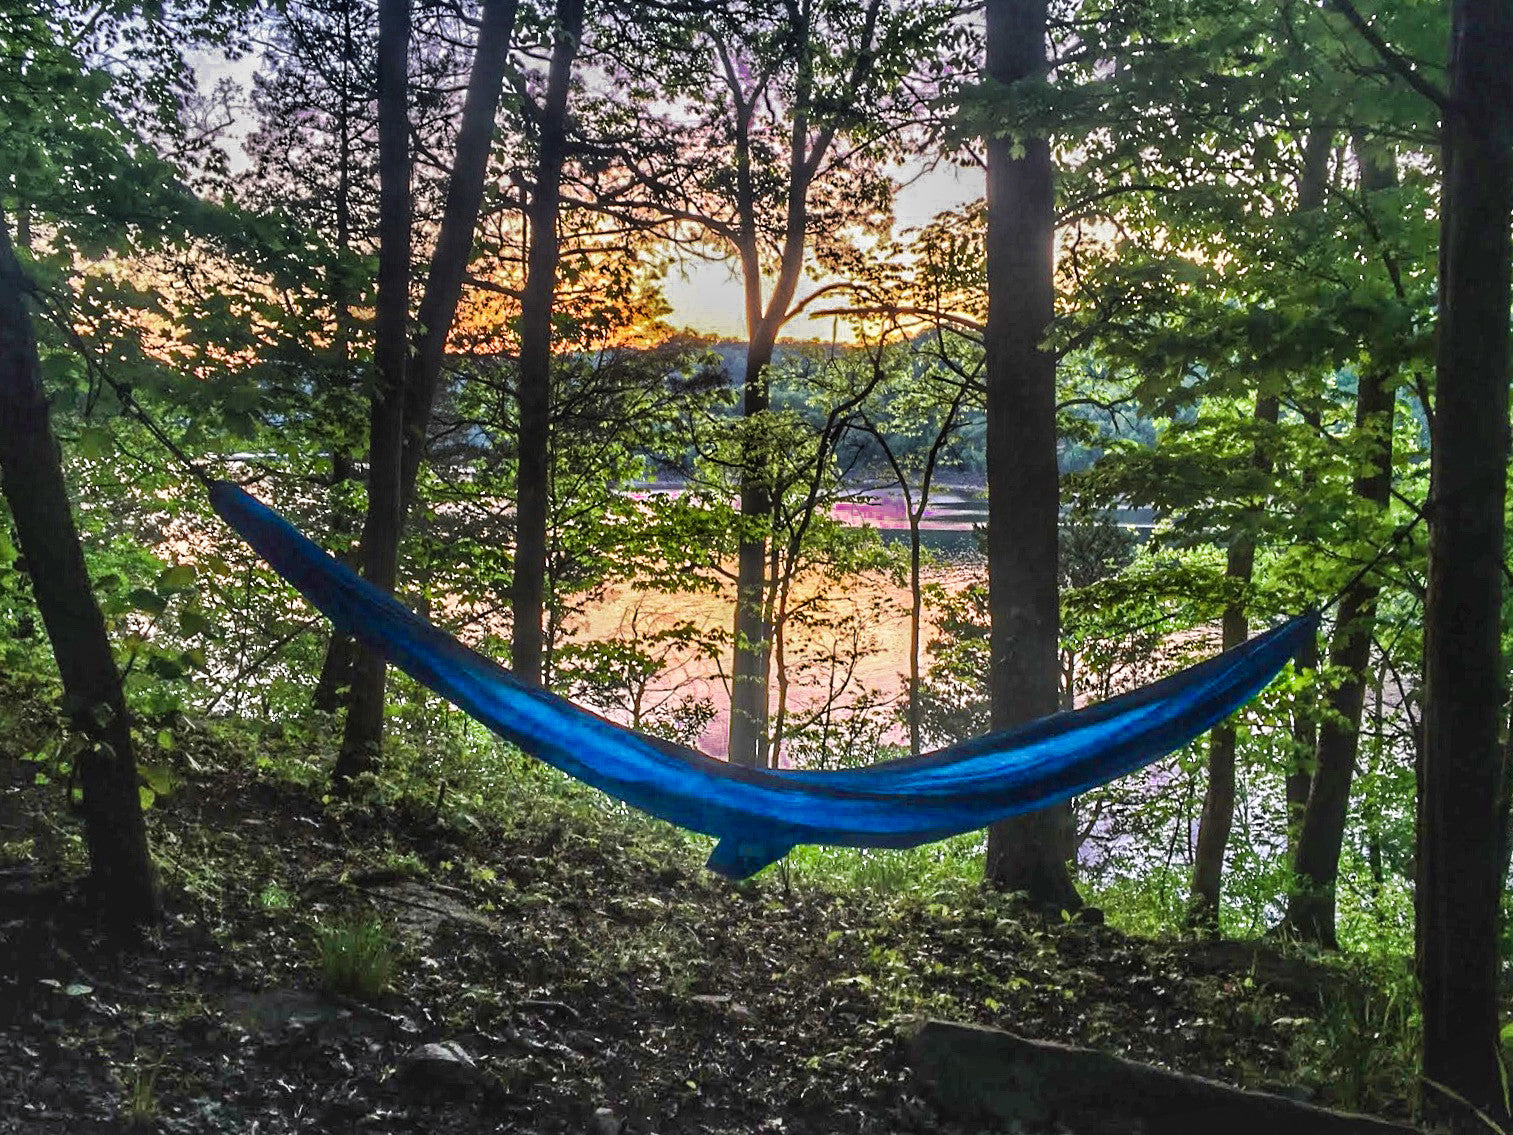 Camping hammocks that give back | Top 5 camping/backpacking hammocks | Madera hammocks | Hammock companies that plant trees